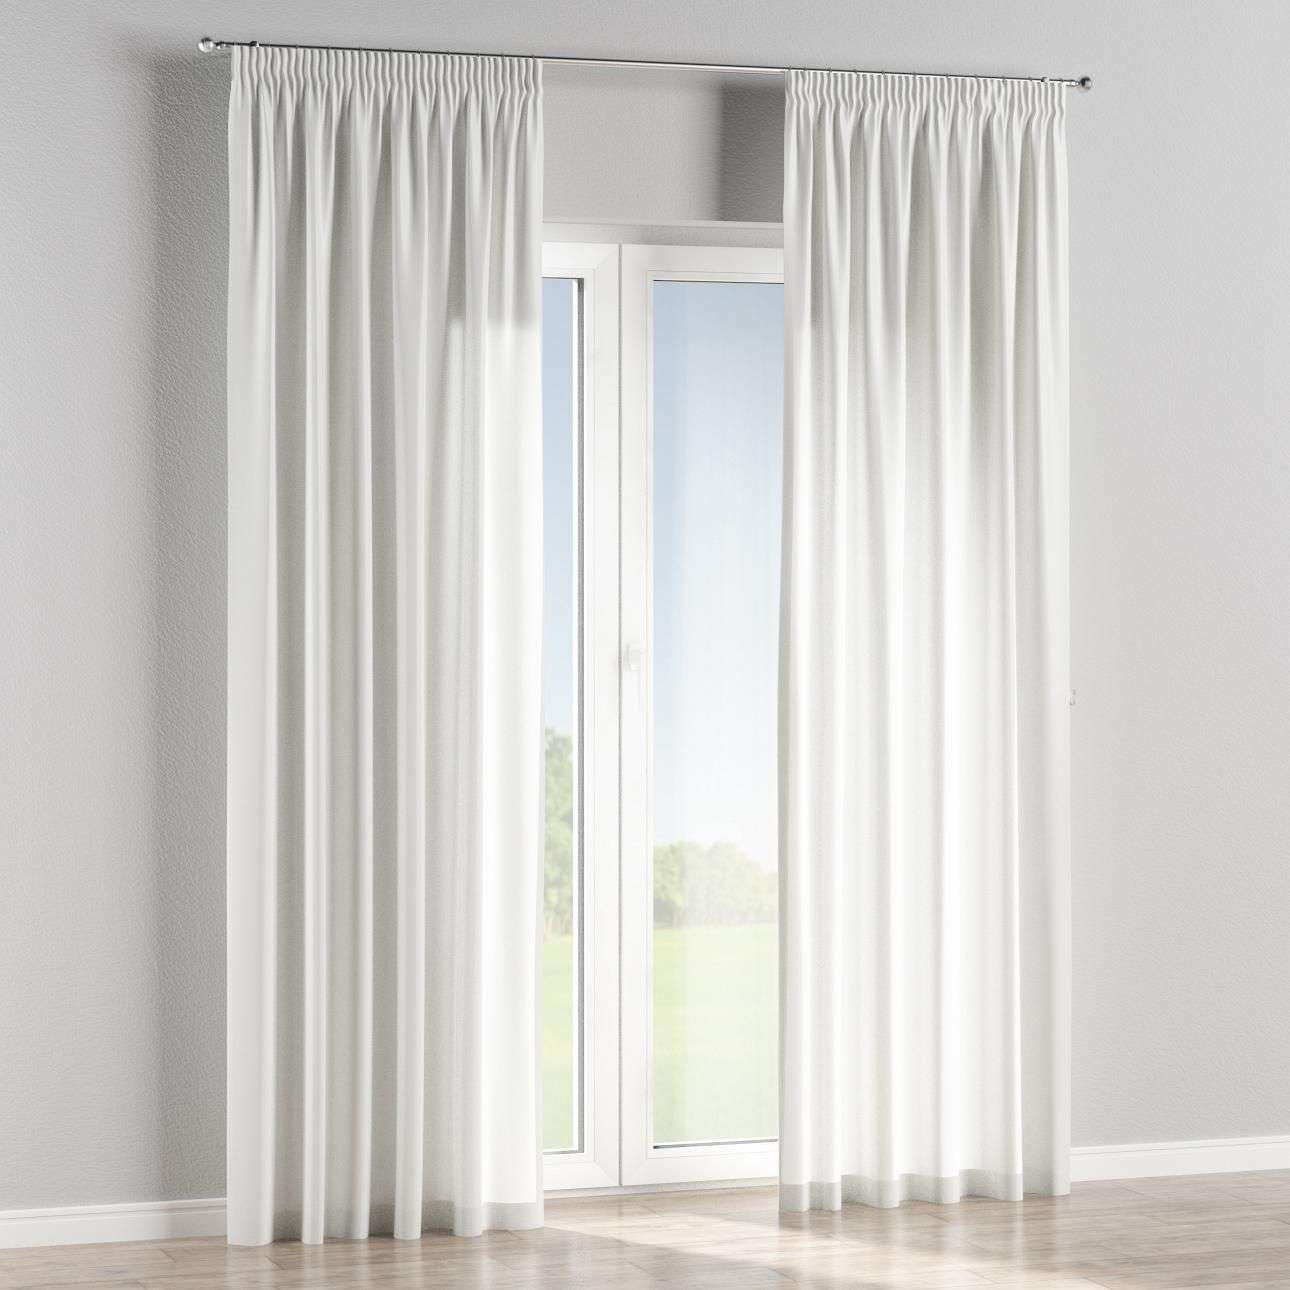 Pencil pleat lined curtains in collection Londres, fabric: 122-08